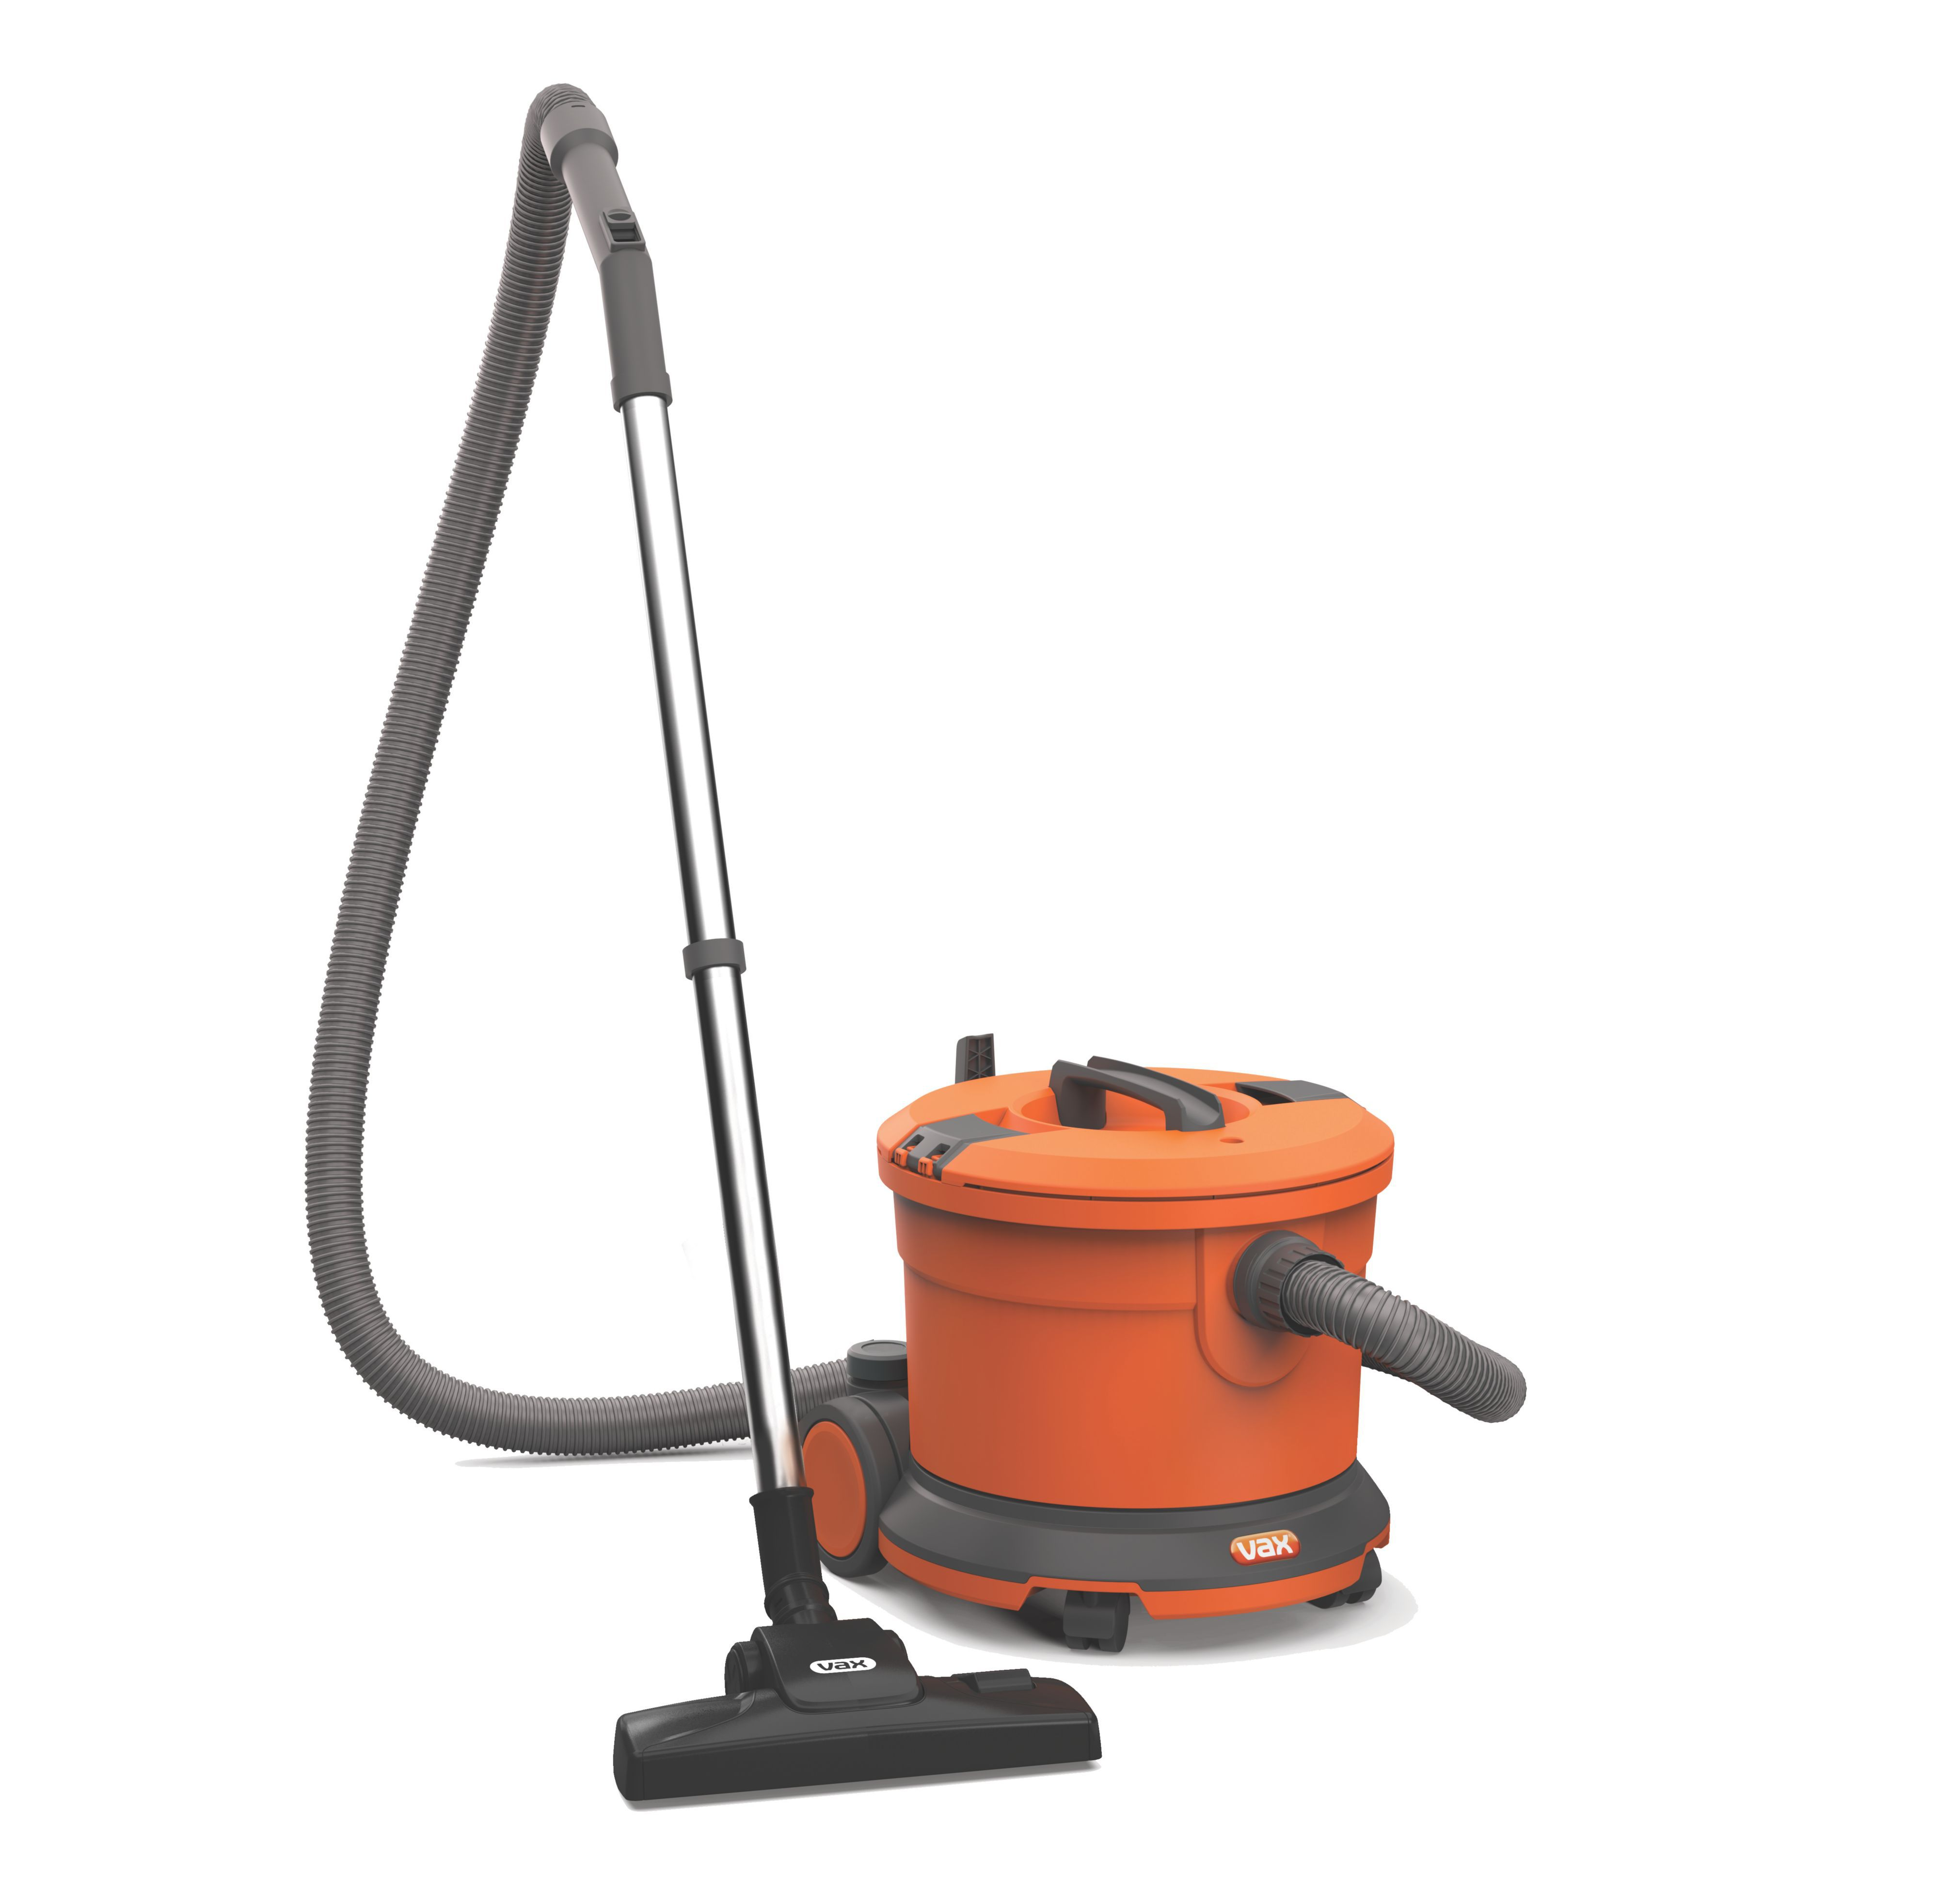 Vax Commercial Corded 9l Bagged Vacuum Cleaner Vcc-10c